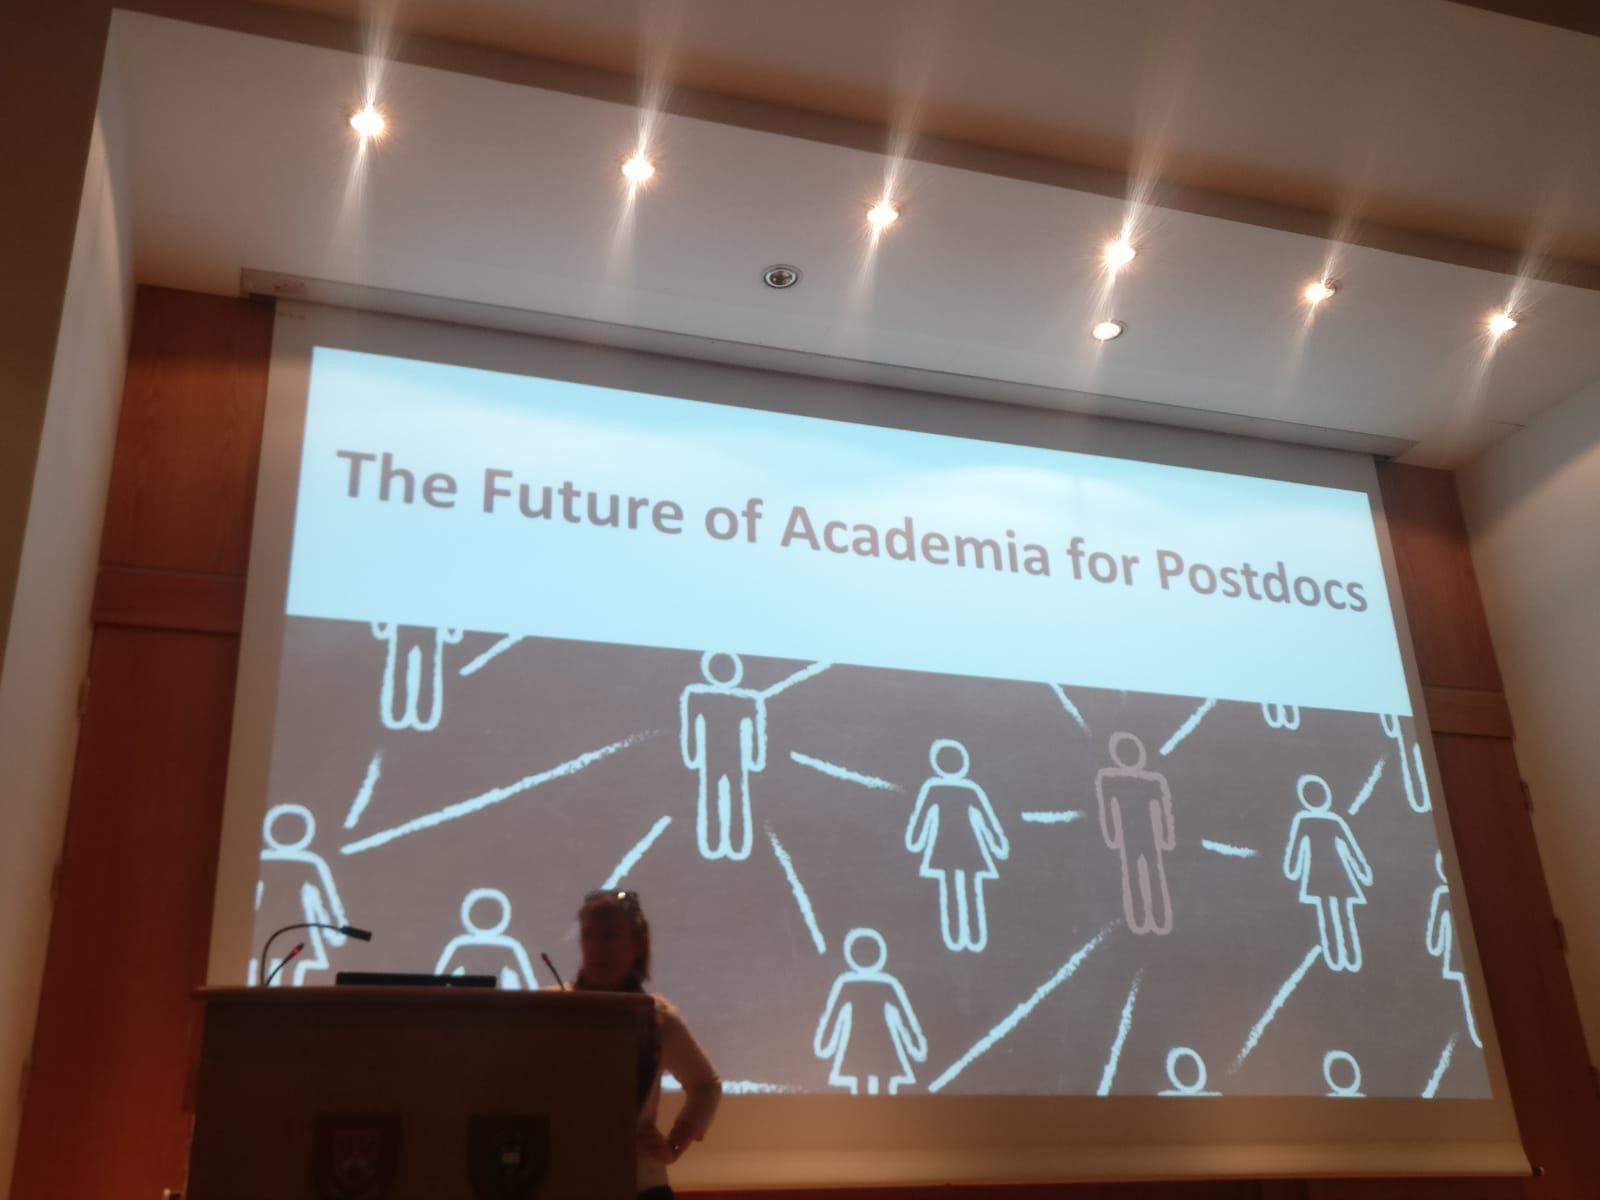 Slide reads 'The Future of Academia for Postdocs'